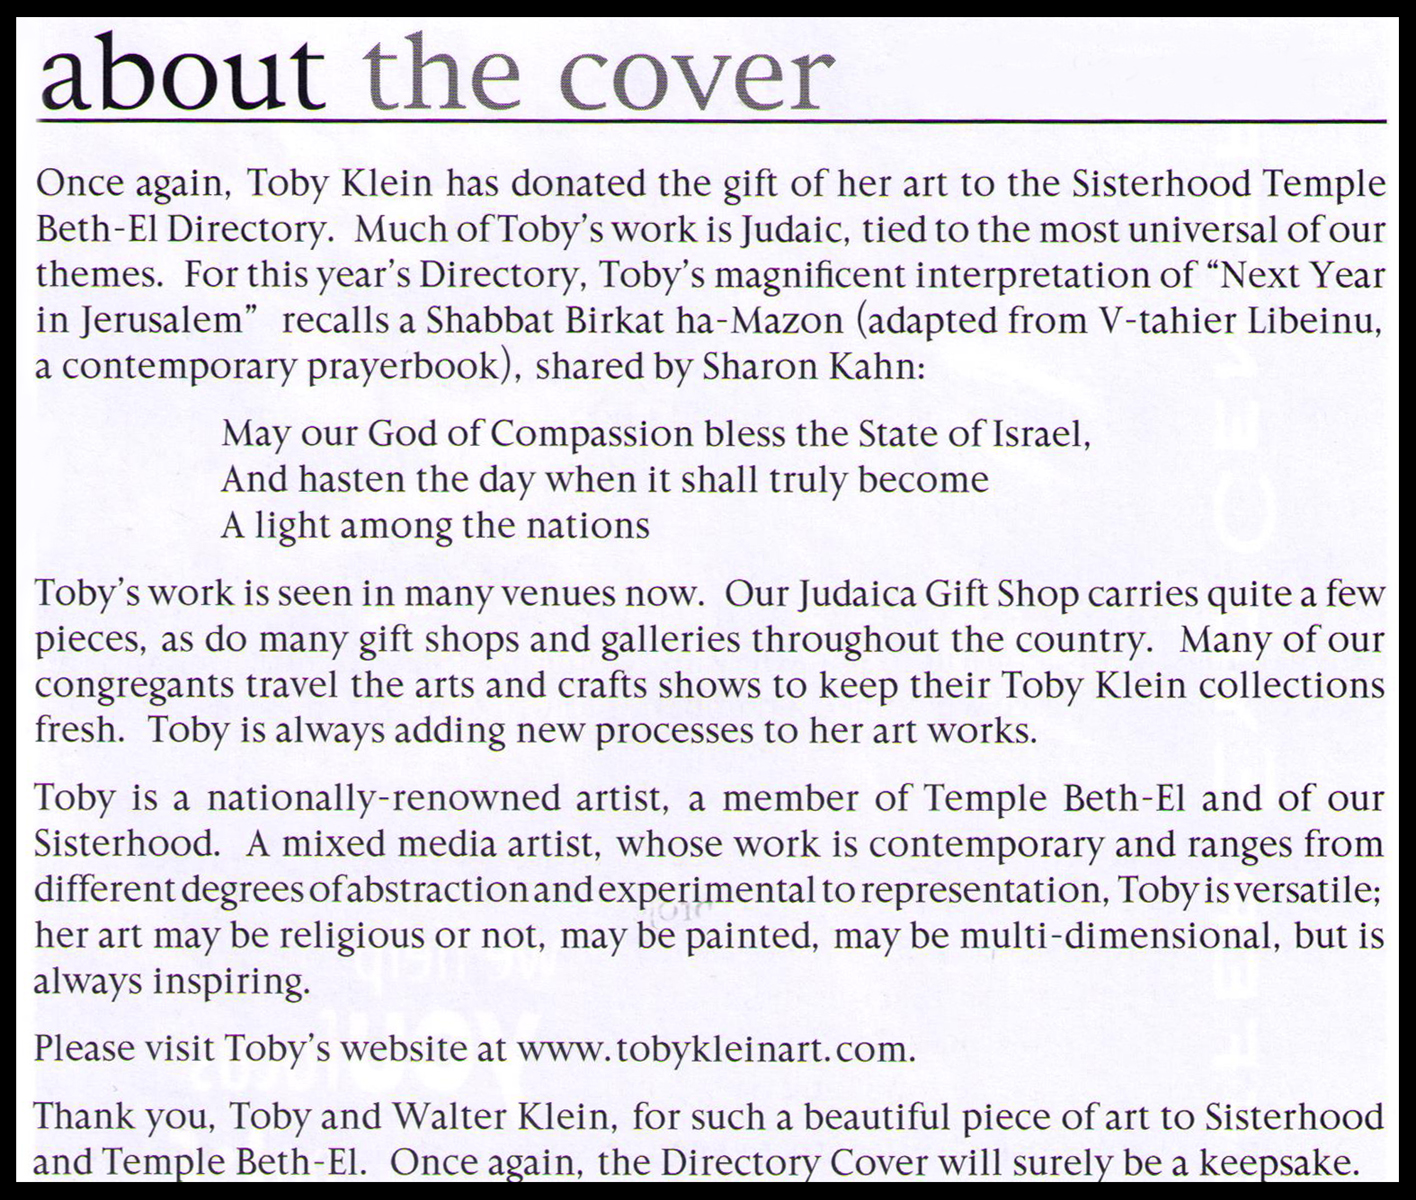 Temple Beth-El Directory 2010 About the Cover